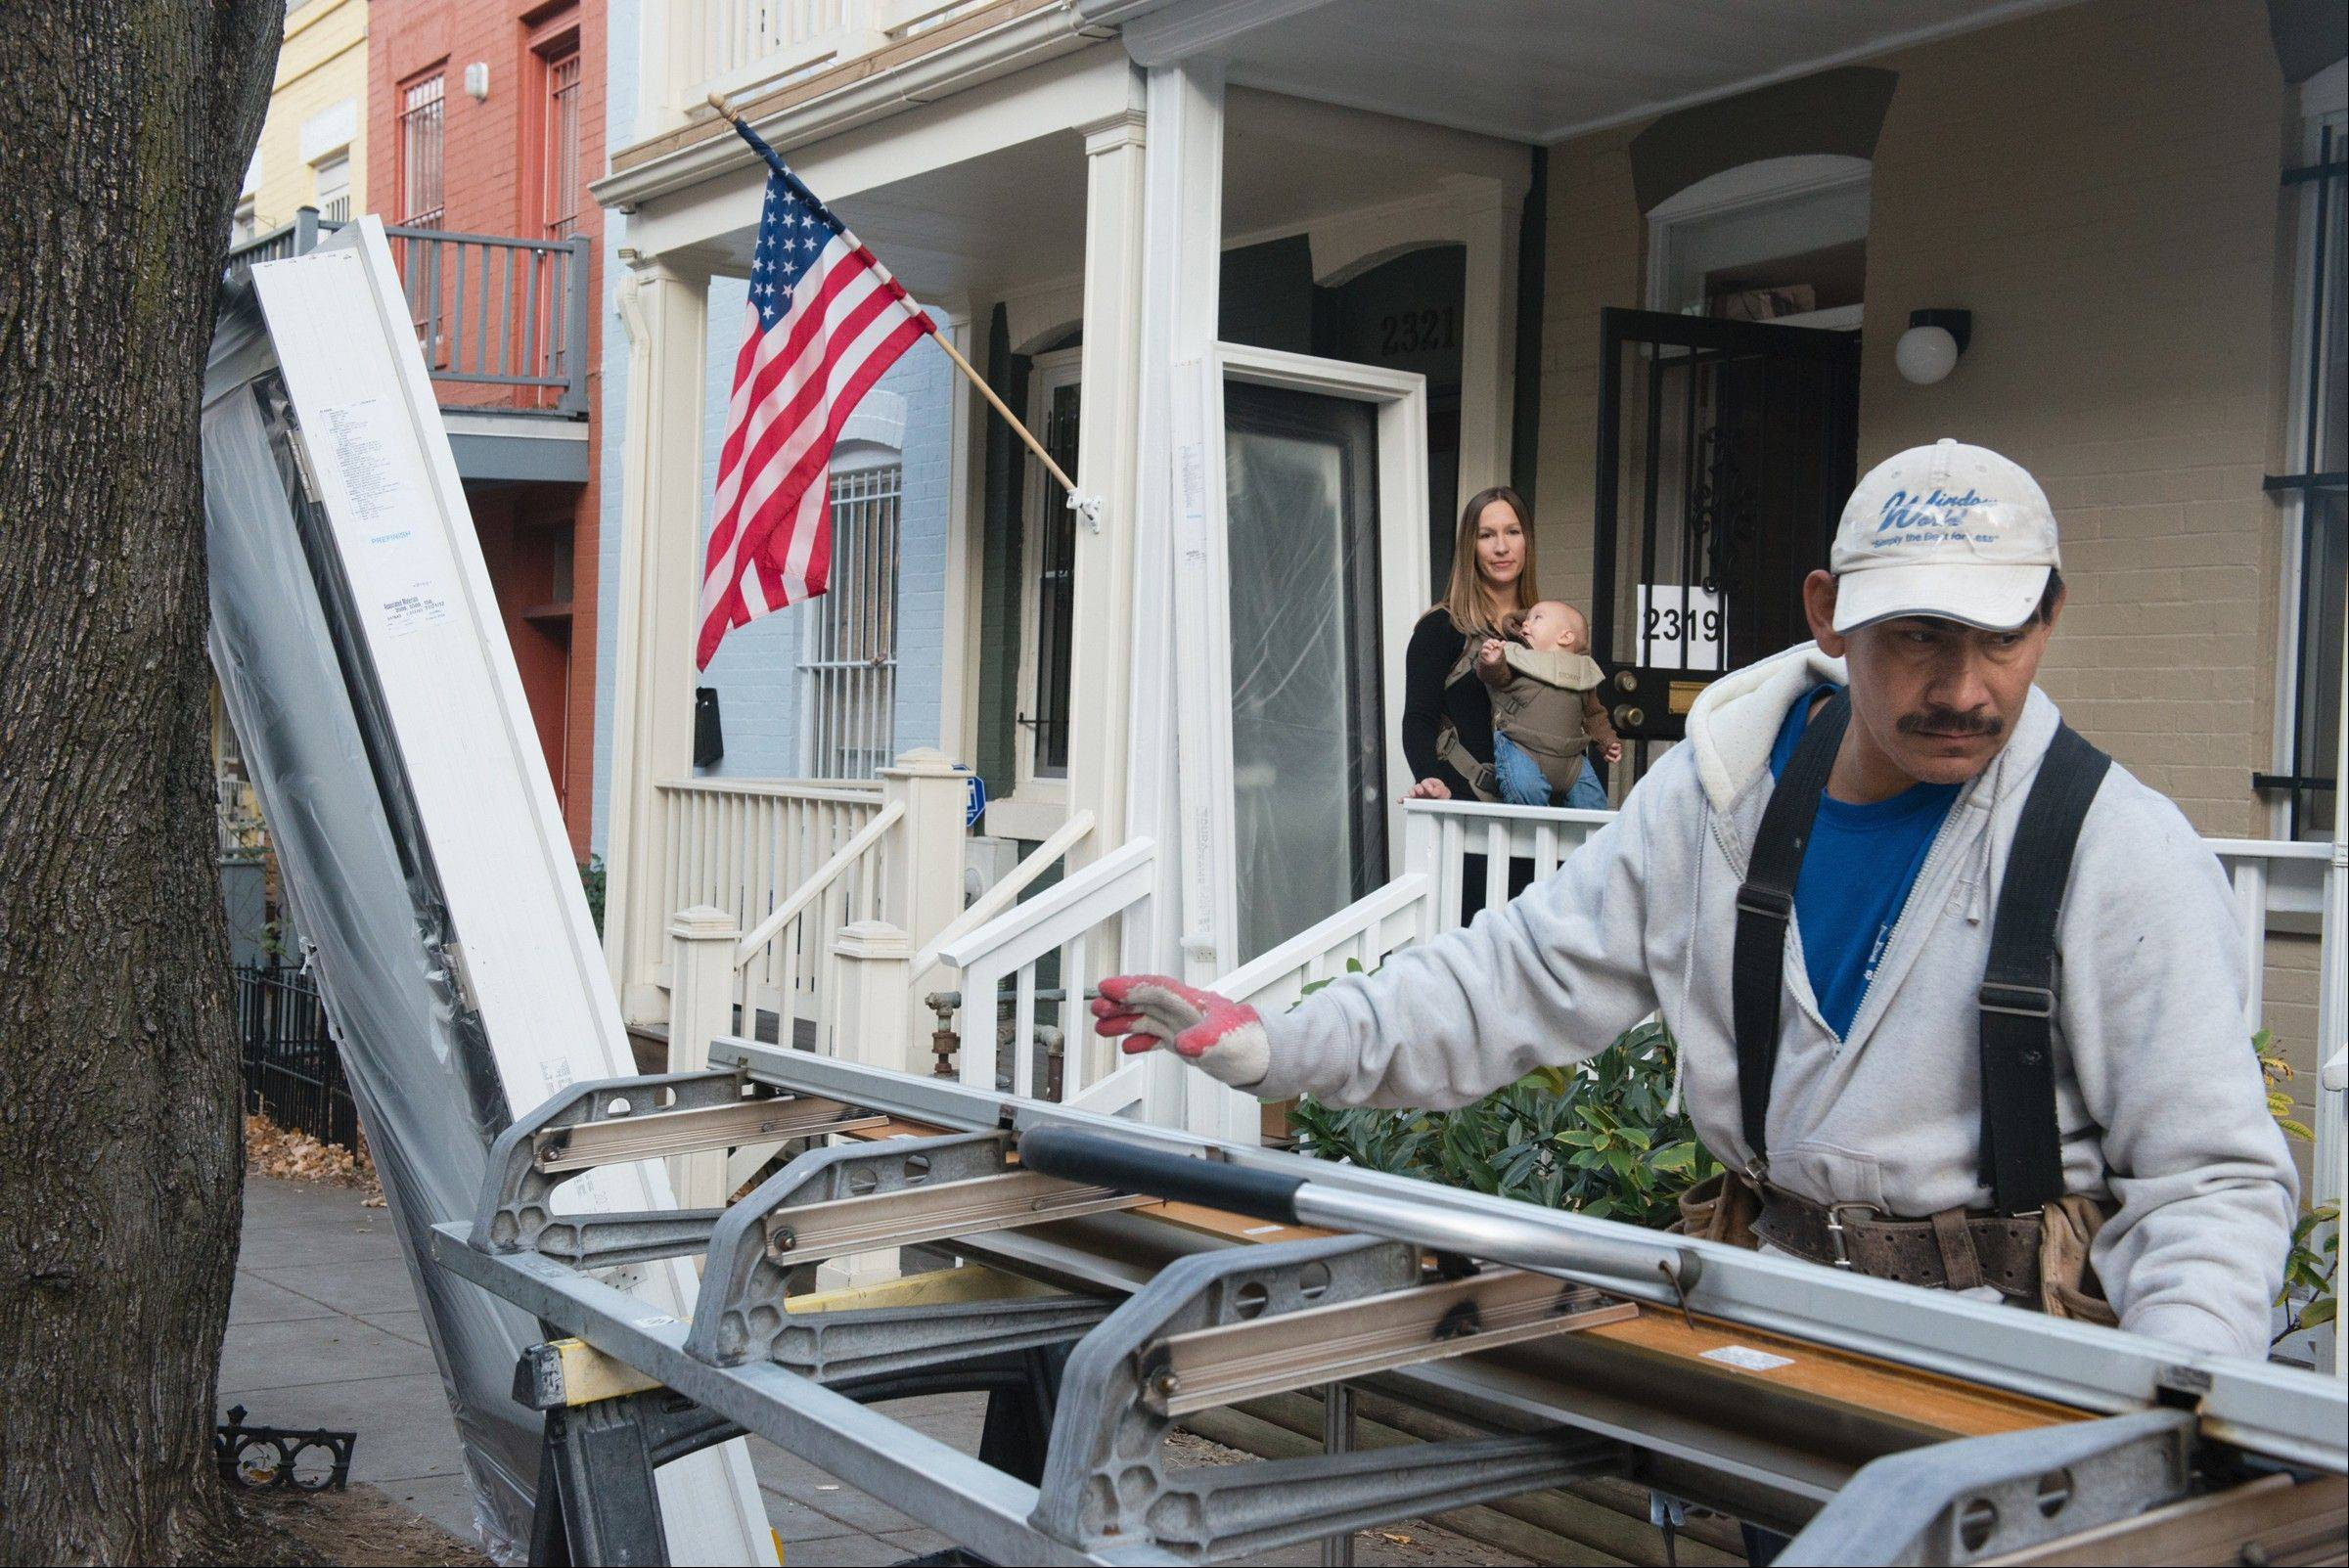 Miguel Orallana of Window World installs a door as homeowner Blakeslee Crumbliss, with her 6-month-old son Owen, look on. She is preparing her Washington, D.C. house for rental.